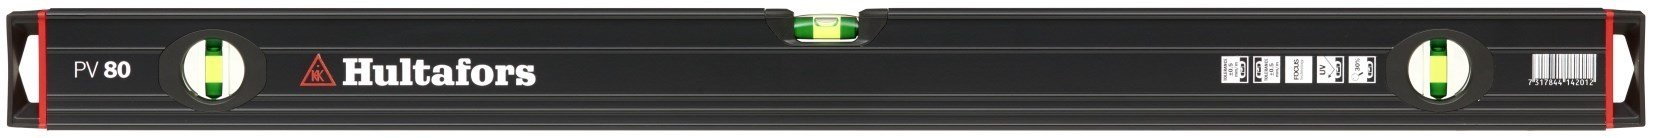 Spirit Level Aluminium PV 80 HU-414201